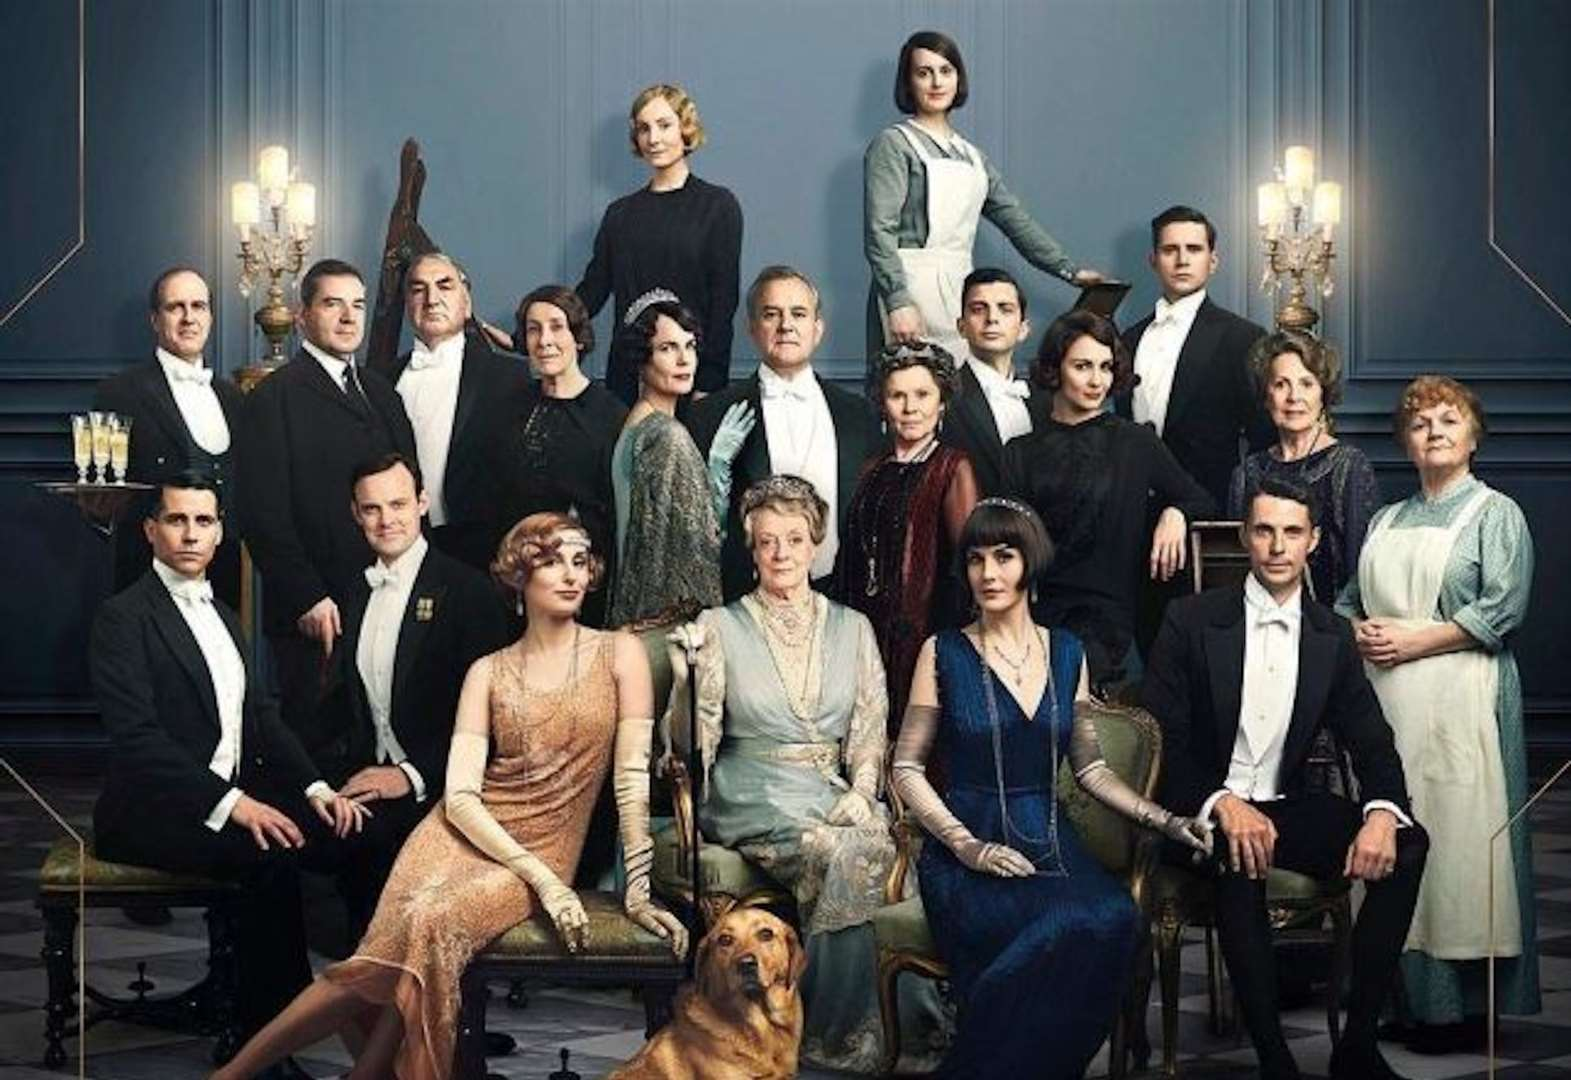 Downton Abbey hits the big screen